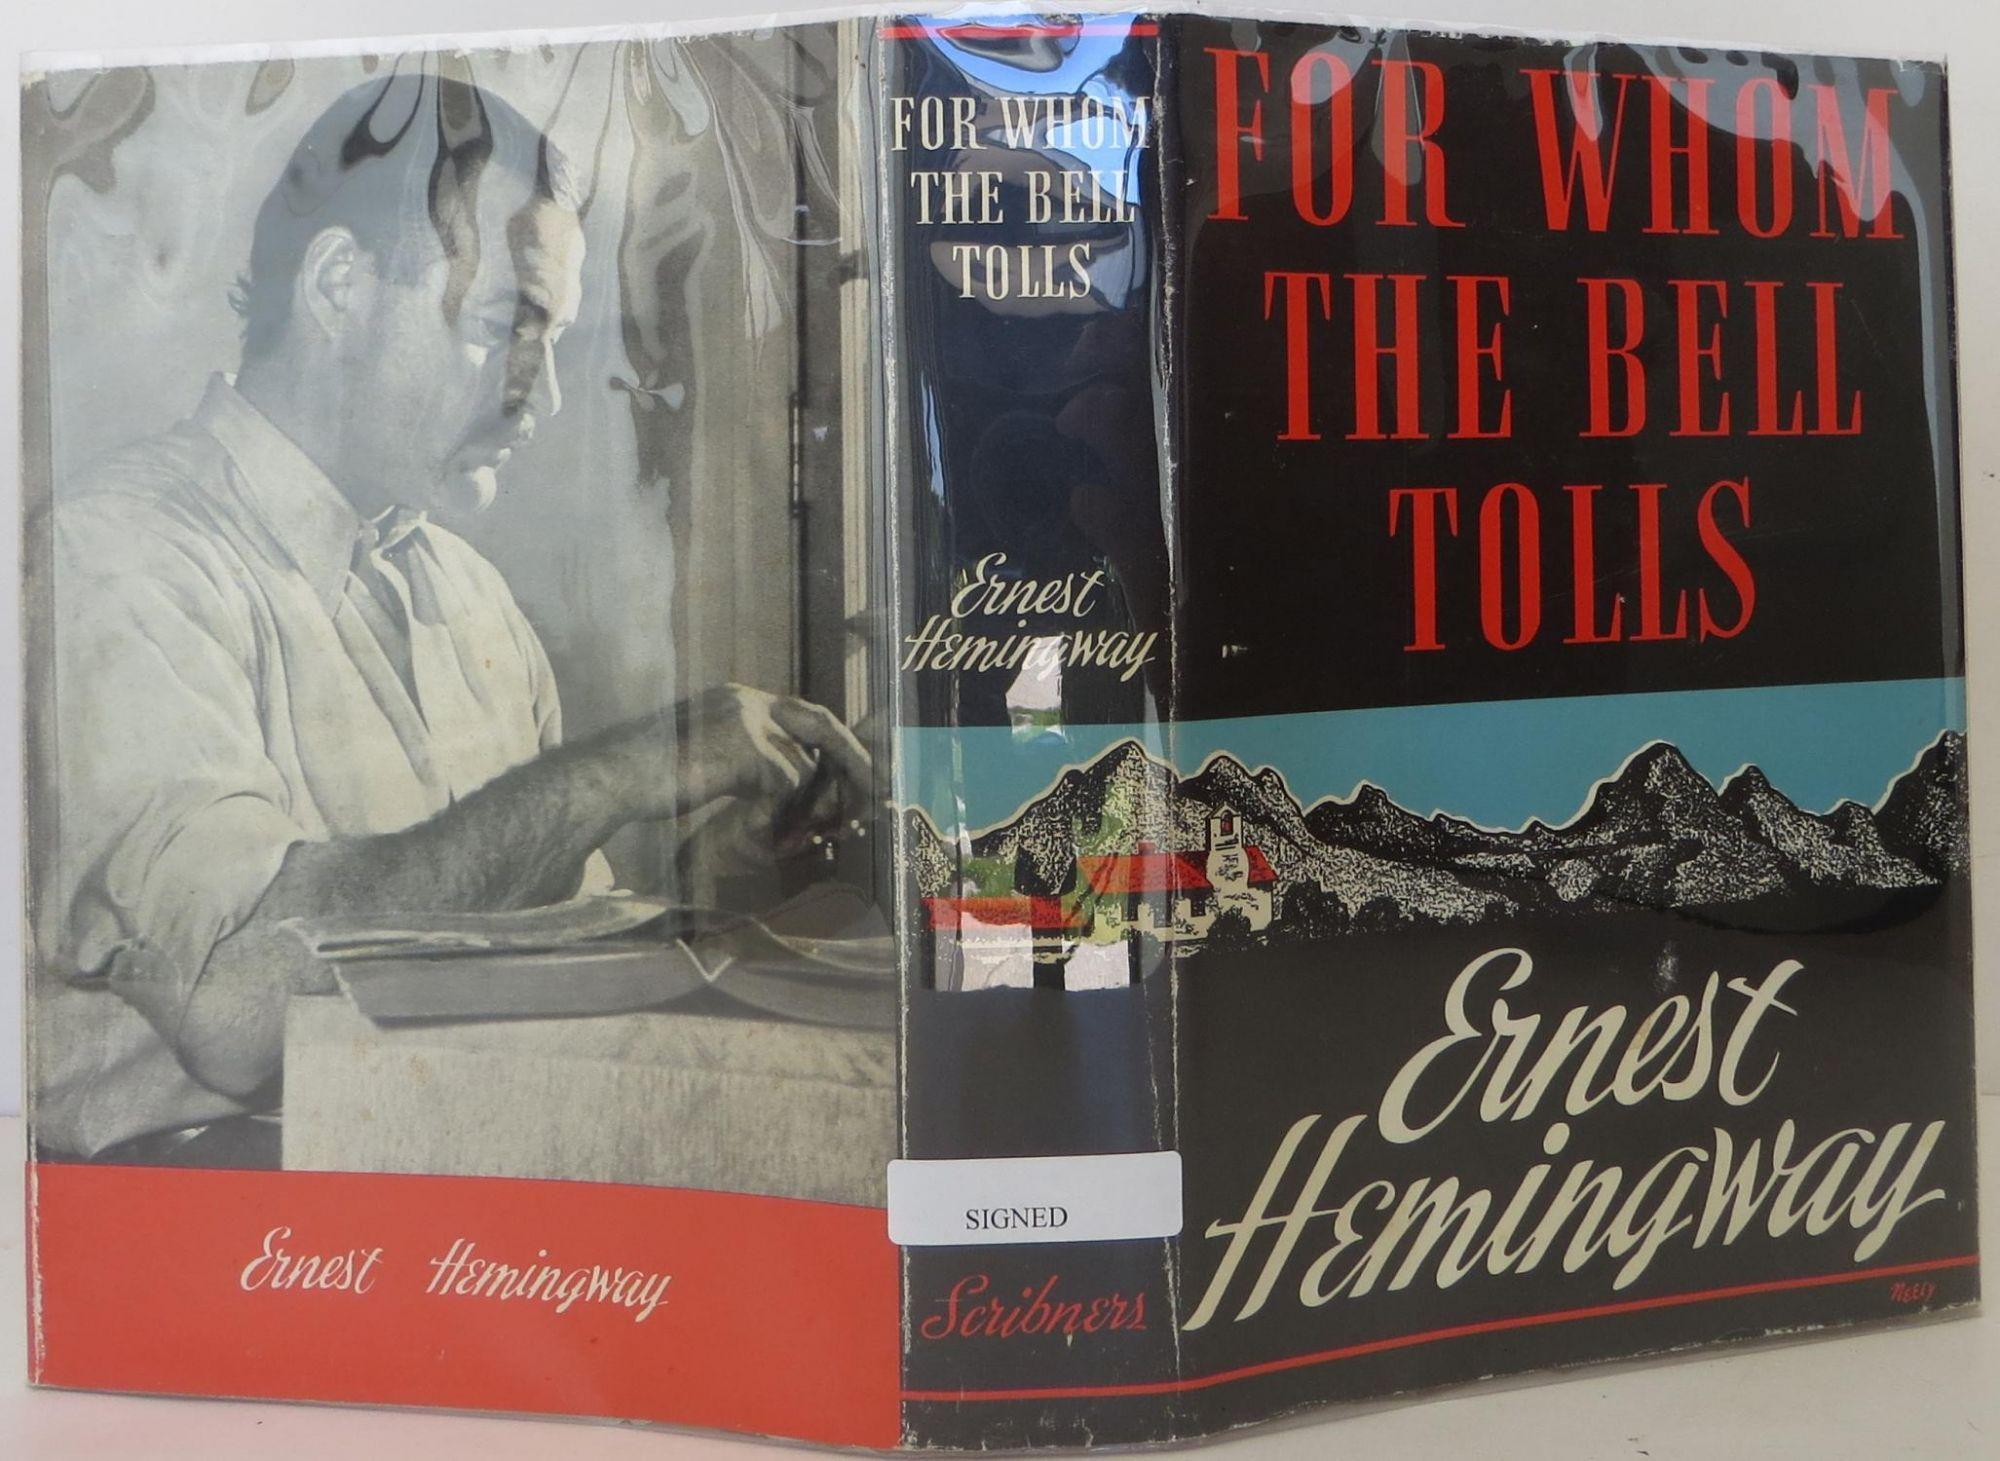 a review of the novel for whom the bell tolls by ernest hemingway Synopsis in 1937 ernest hemingway traveled to spain to cover the civil war there for the north american newspaper alliance three years later he completed the greatest novel to emerge from the good fight, for whom the bell tolls.